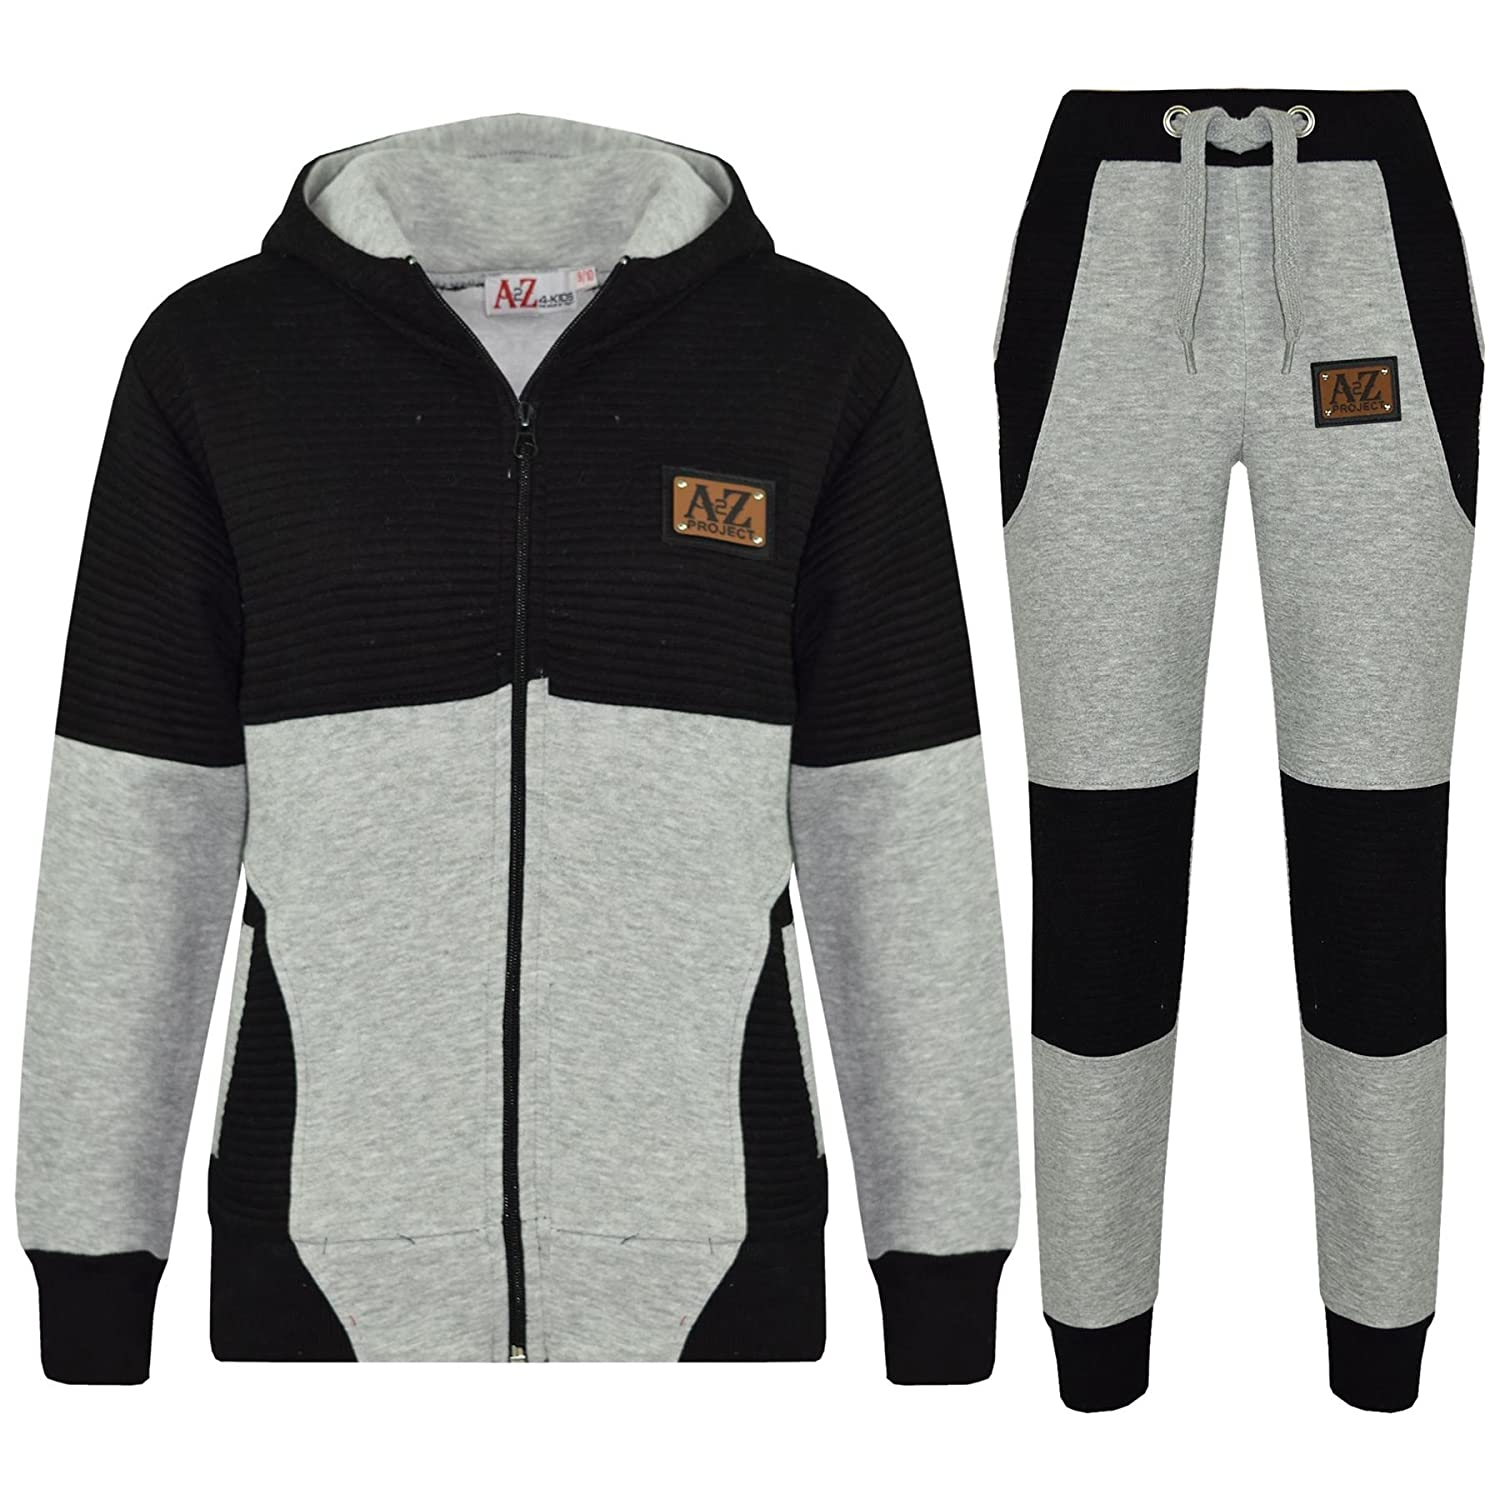 A2Z 4 Kids® Boys Girls Tracksuit Designer's A2Z Project Badged Grey & Black Hoodie & Botom Jogging Suit Joggers Age 5 6 7 8 9 10 11 12 13 Years